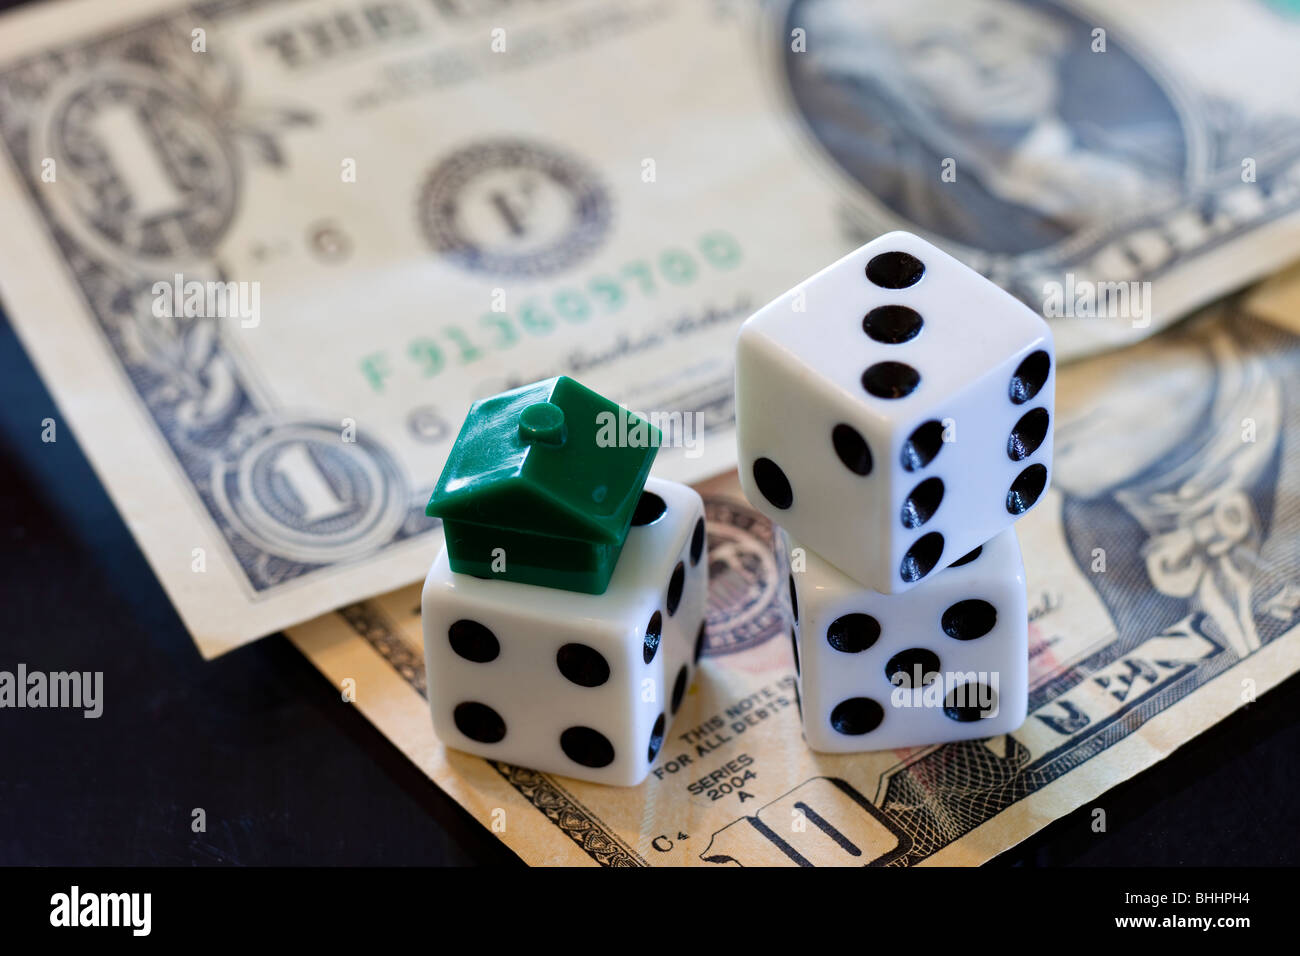 Dice, US Dollars and Monopoly house - Stock Image